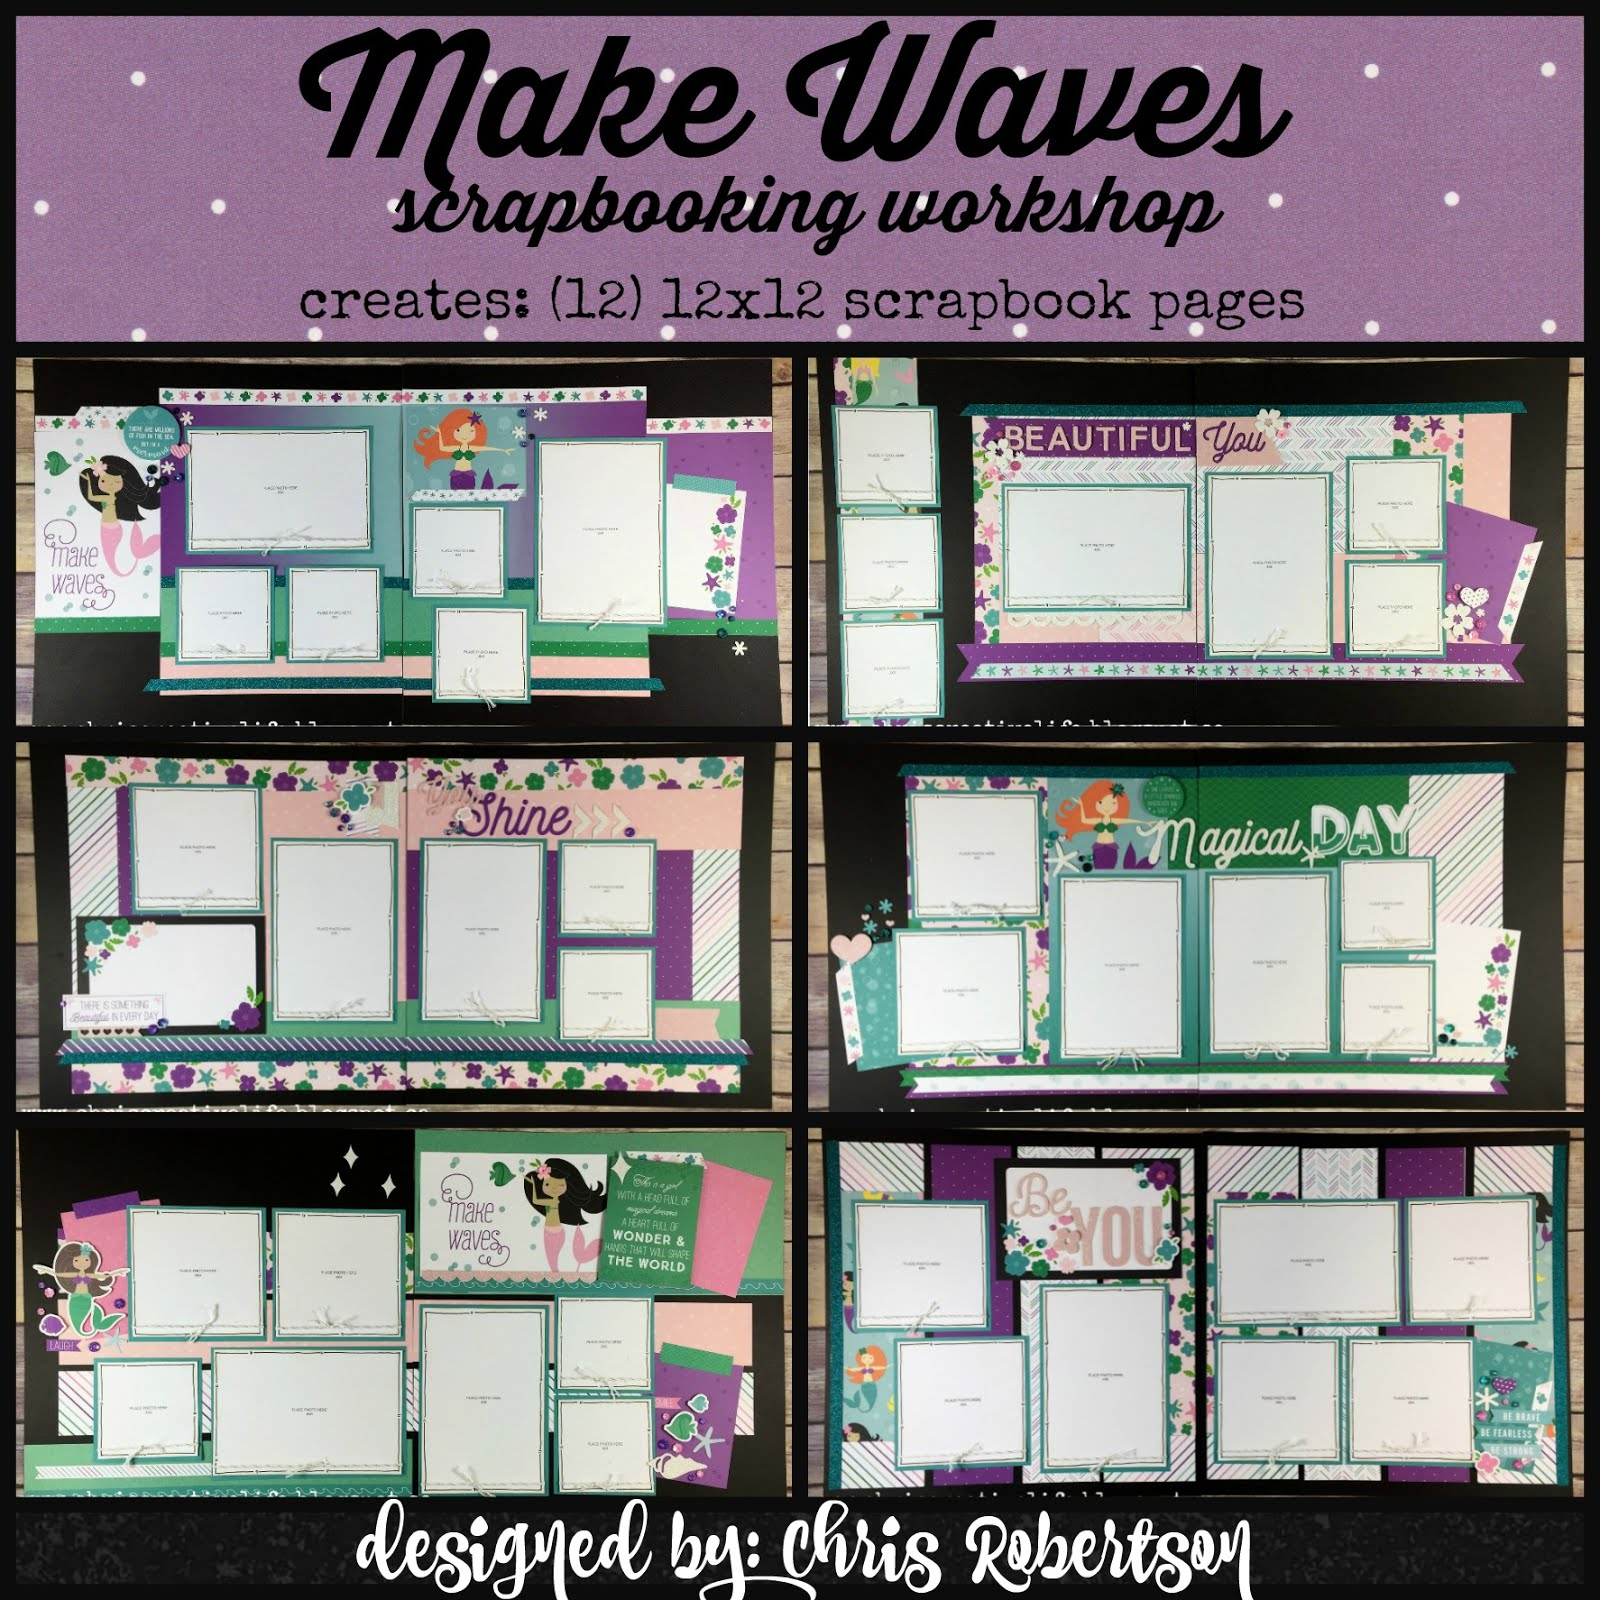 Make Waves Scrapbooking Workshop